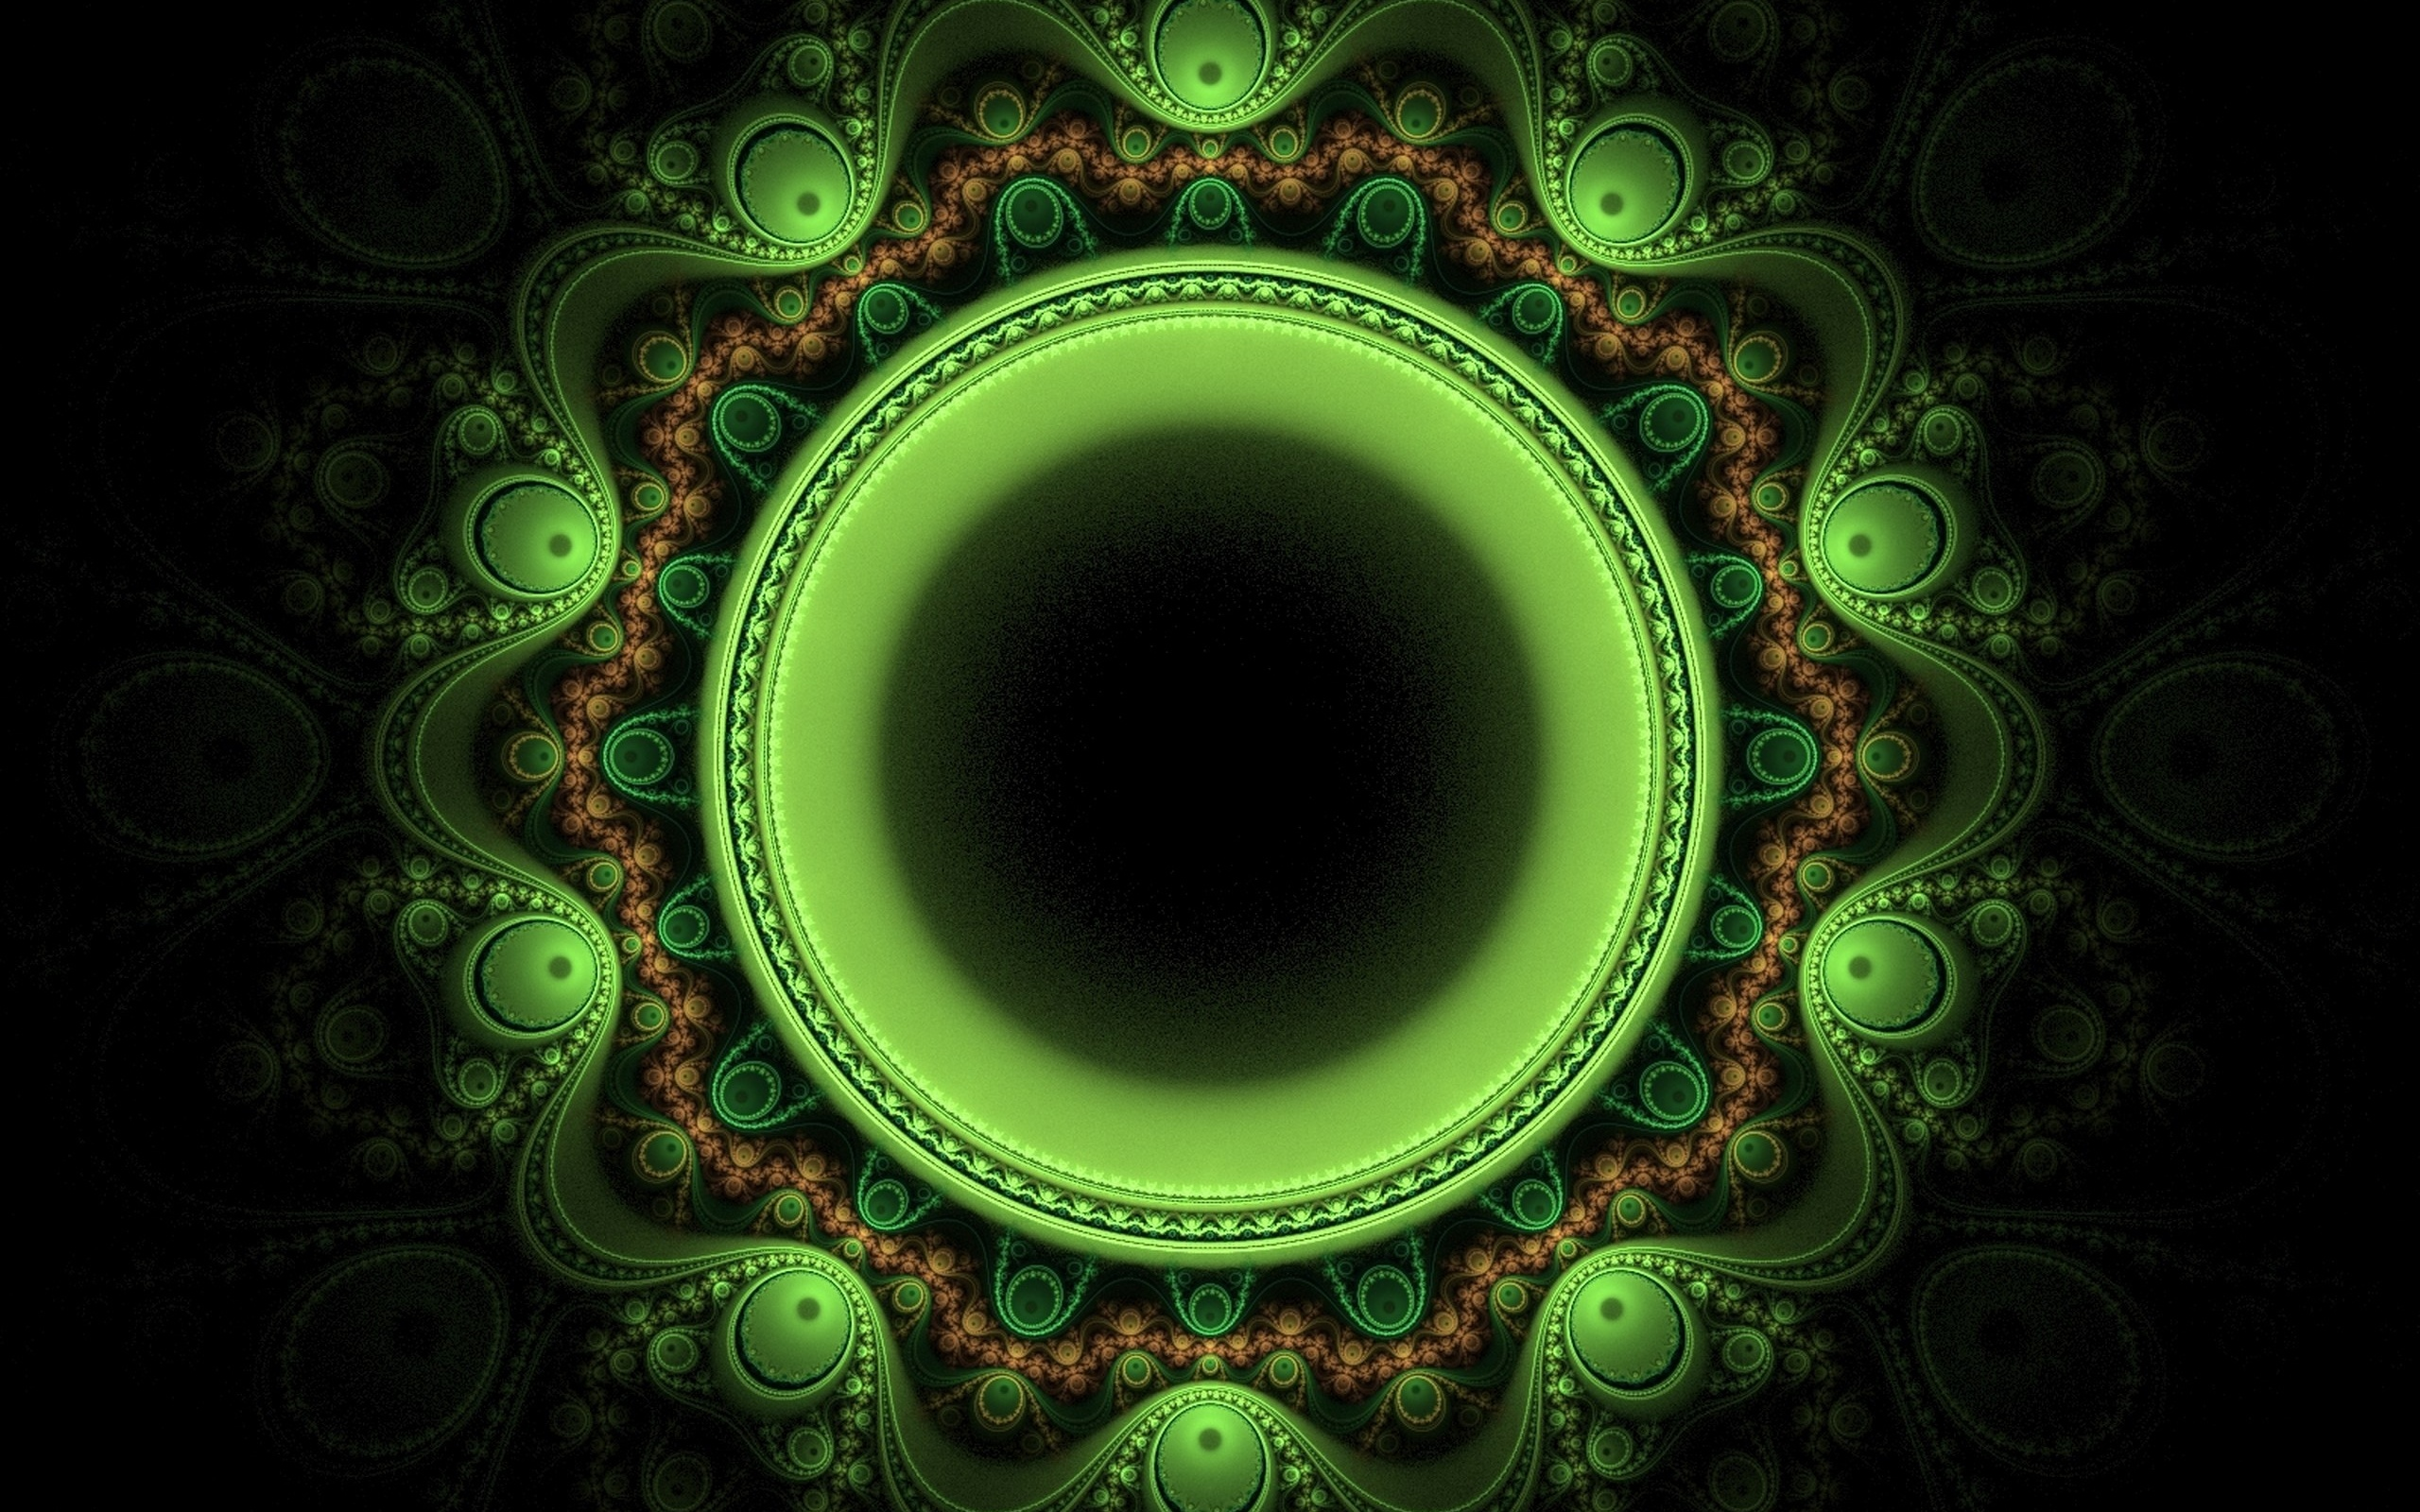 Abstract - Fractal Wallpaper